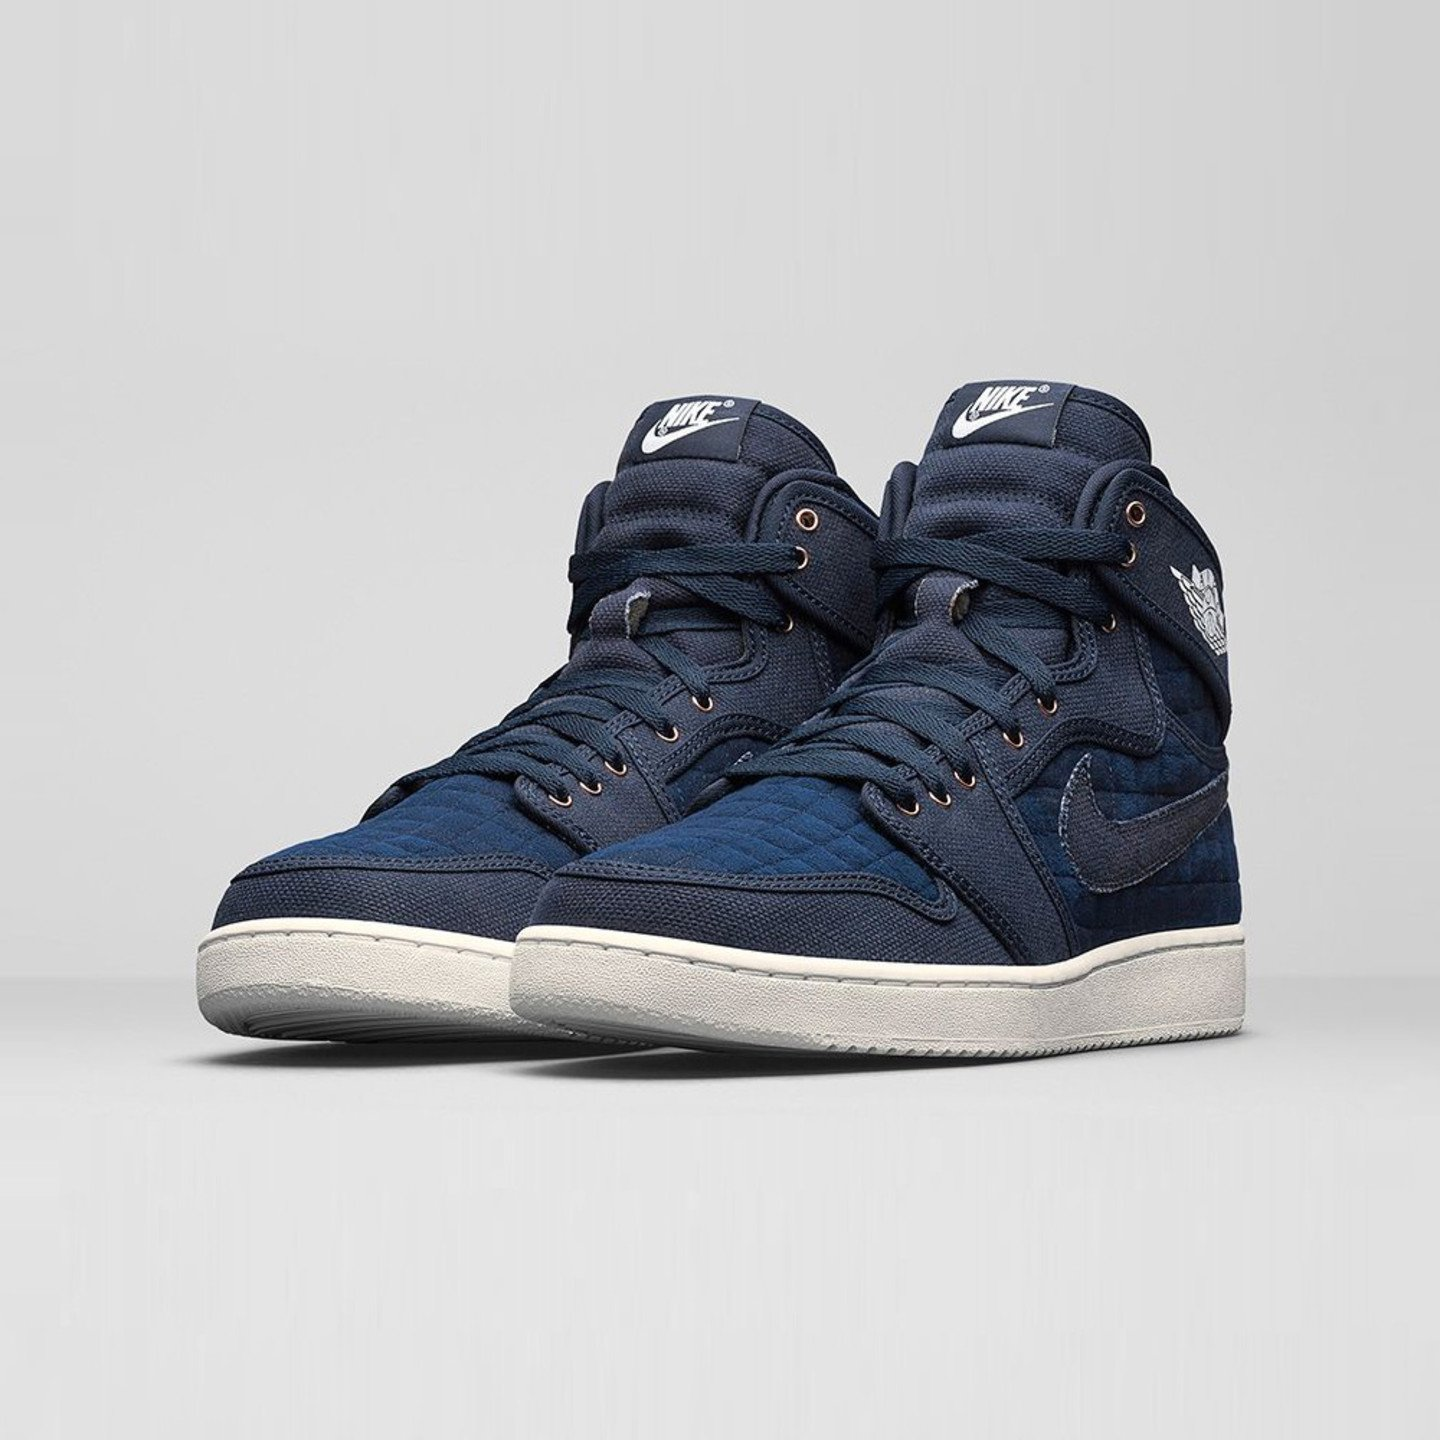 Jordan Air Jordan 1 KO High OG Obsidian / White / Metallic Red 638471-403-45